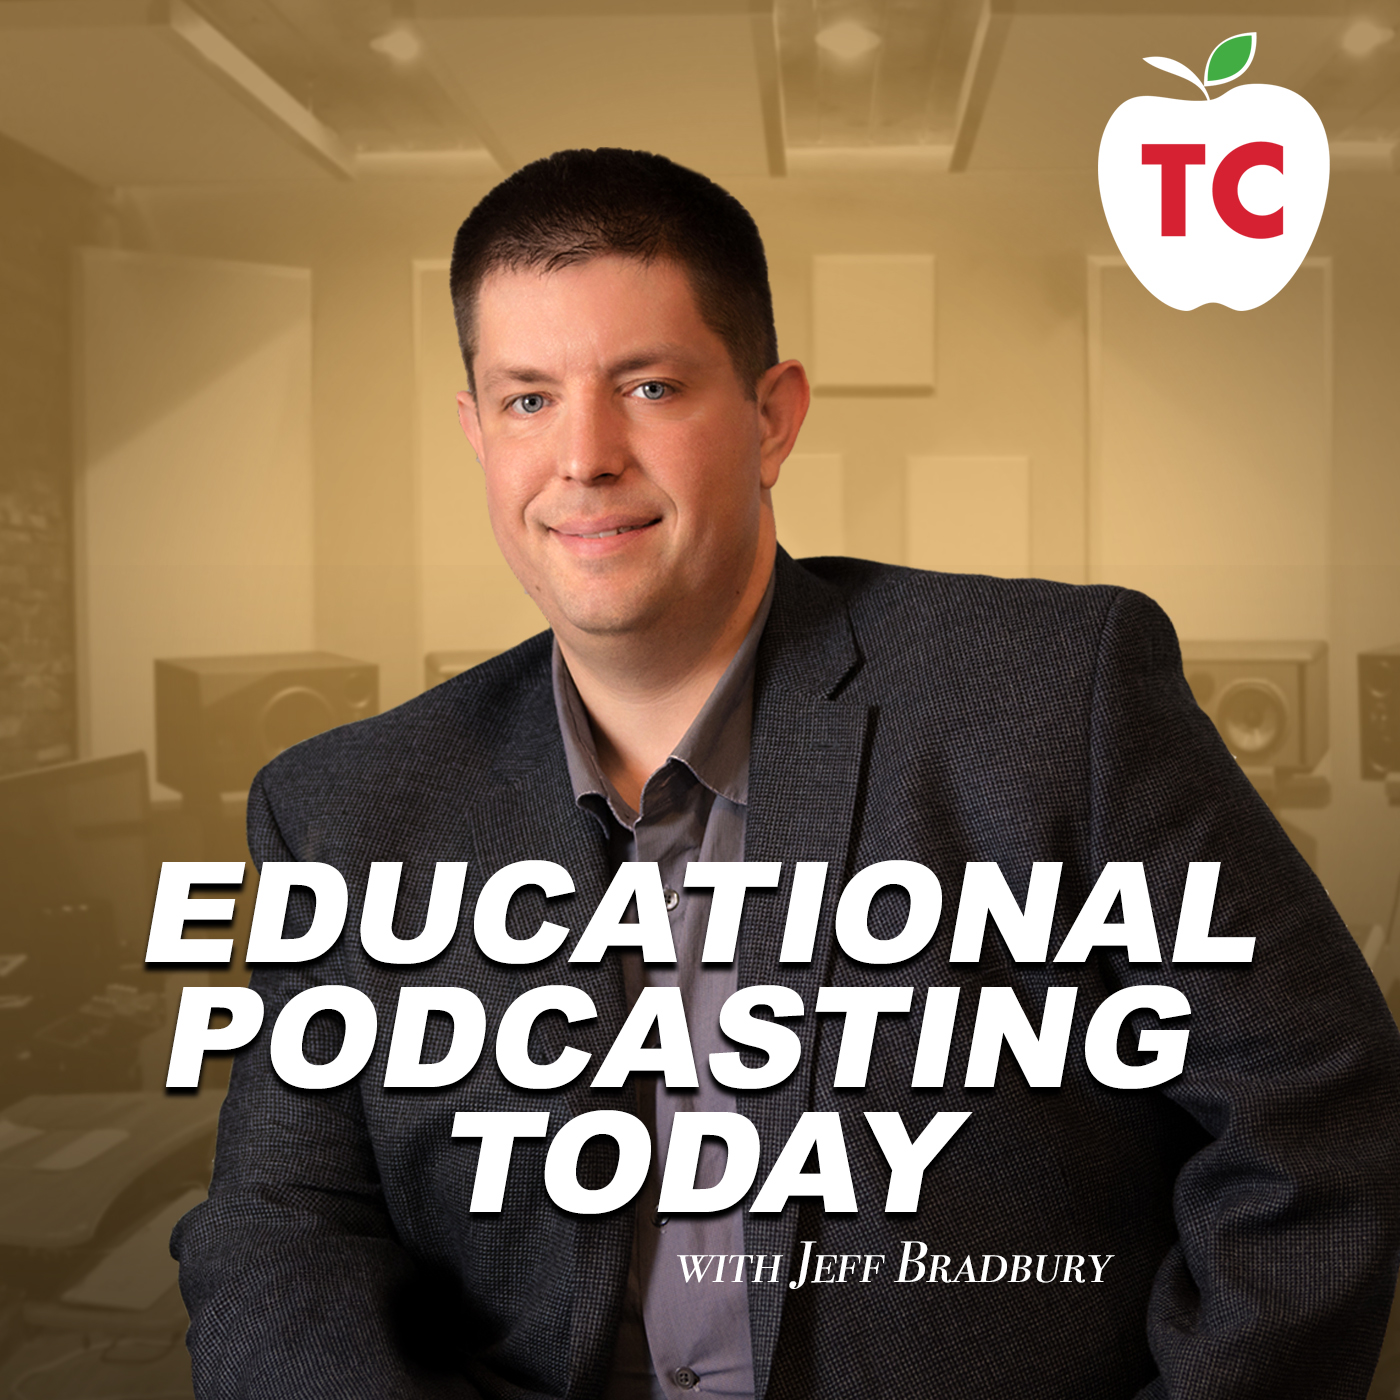 Educational Podcasting Today Podcast Square 1400x1400